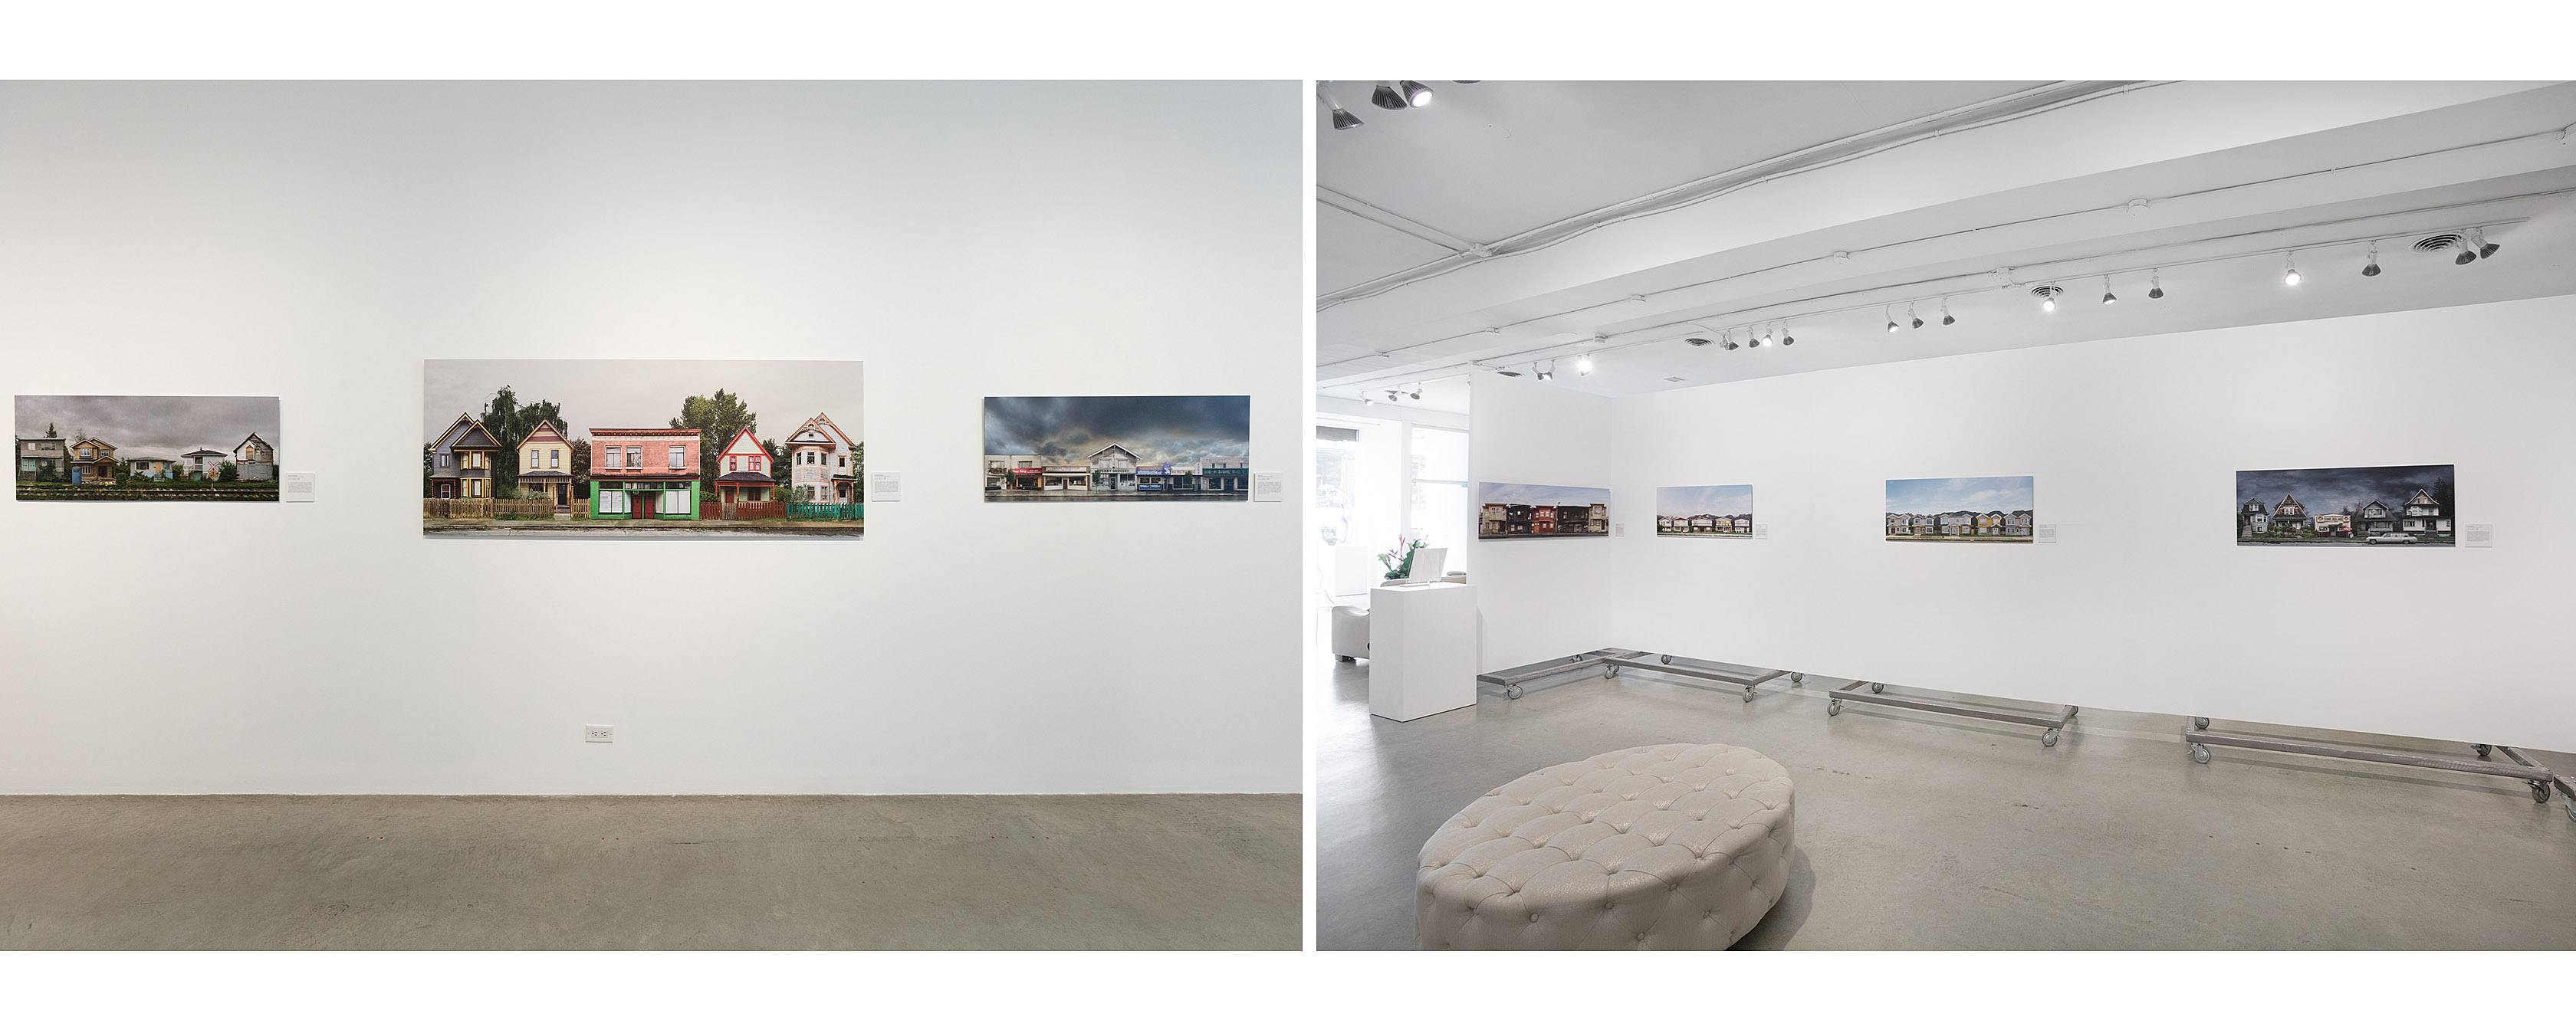 30″ x 75″ and 18″ x 45″ prints, in installation